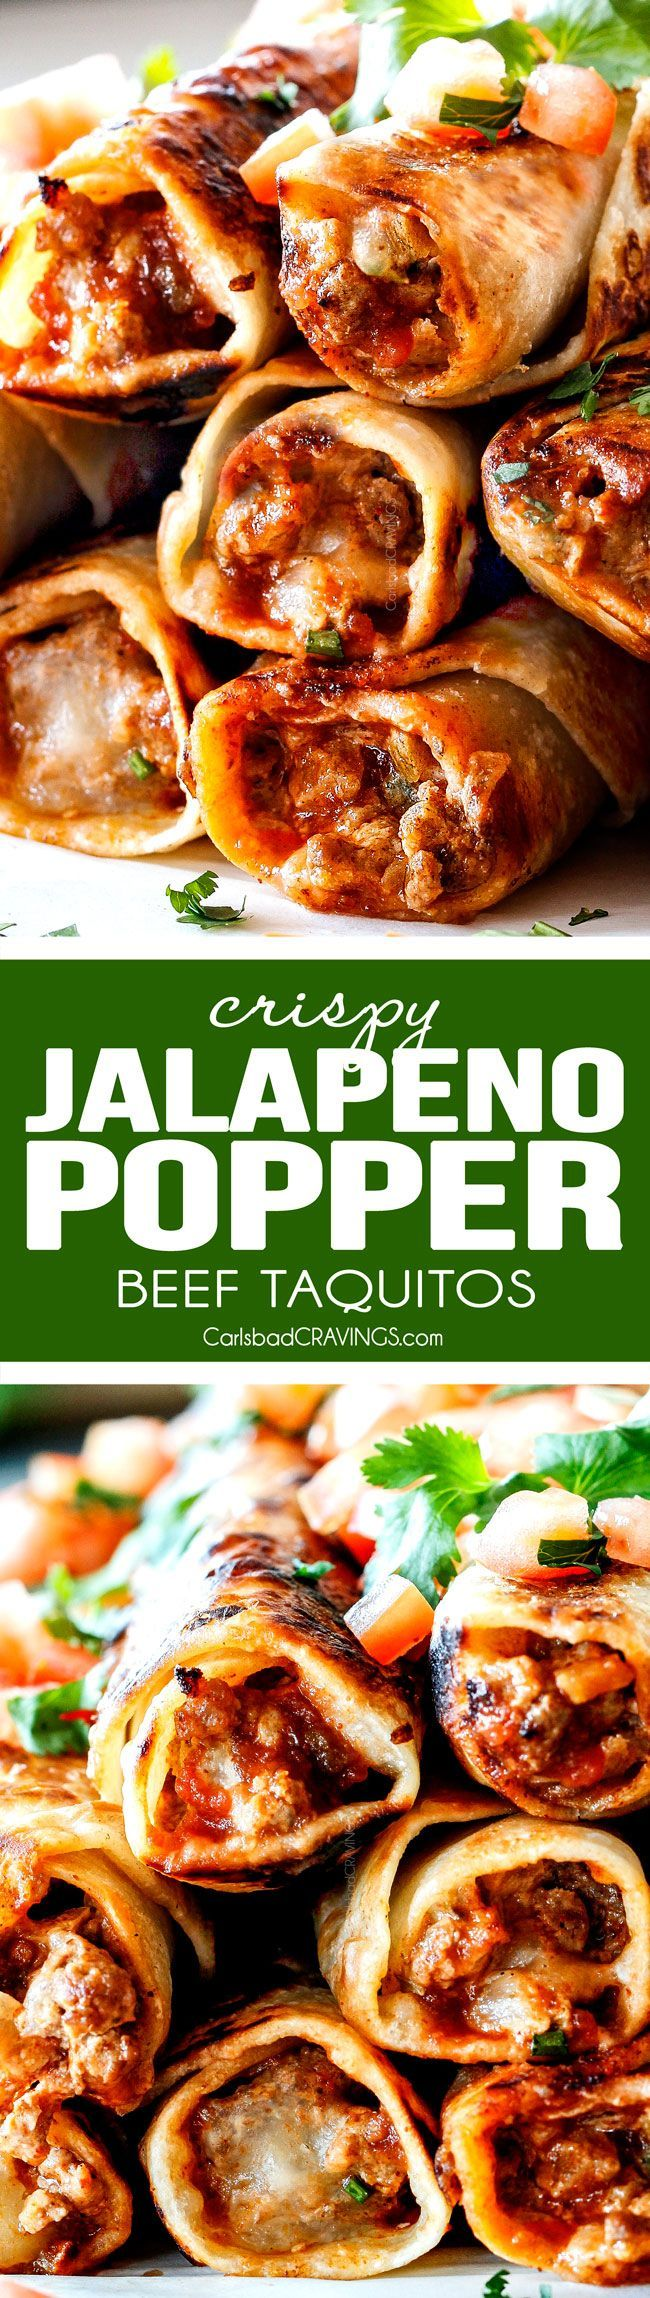 EASY 30 MINUTE Crispy Jalapeno Popper Beef Taquitos bursting with irresistible creamy, cheesy spicy beef filling (customizable) all cocooned in crispy tortillas! These are my husband's favorite ever appetizer and I couldn't stop eating them! Perfect game day any party appetizer!